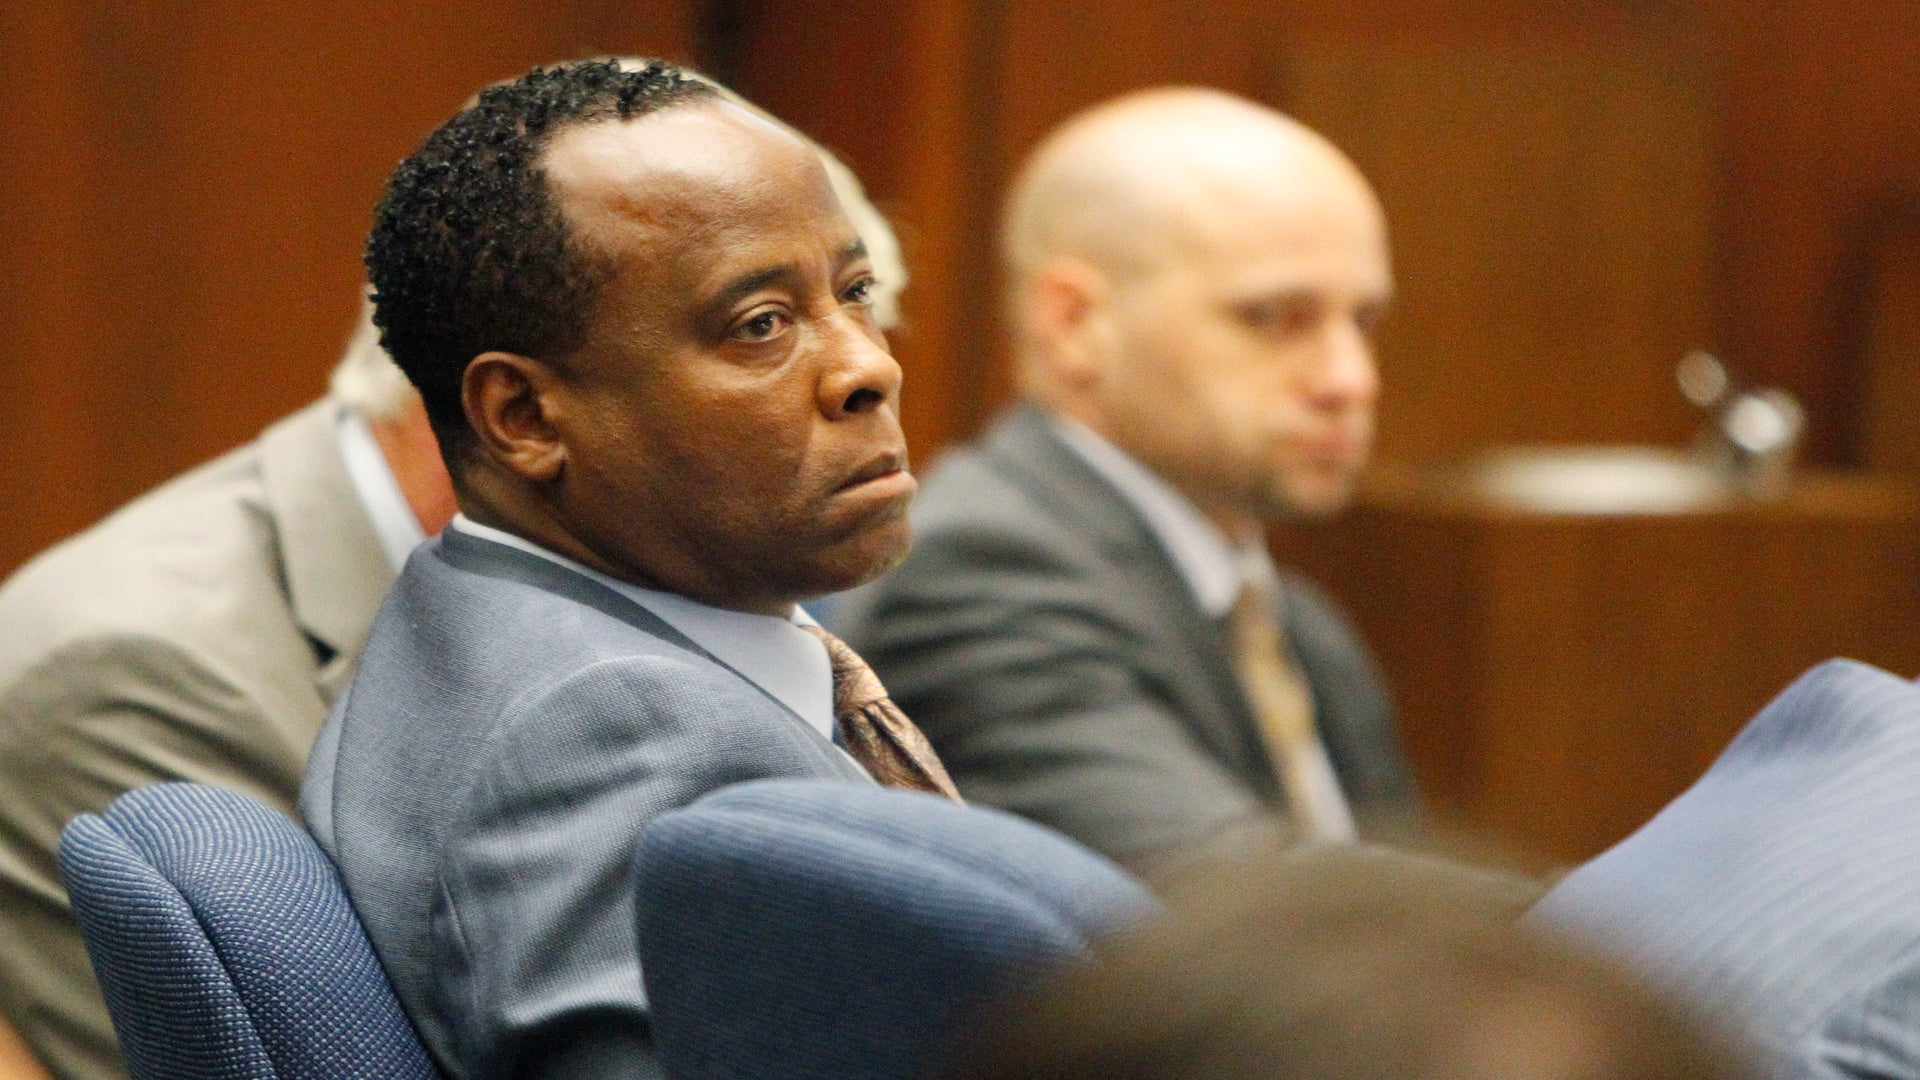 Could Dr. Conrad Murray Receive House Arrest?